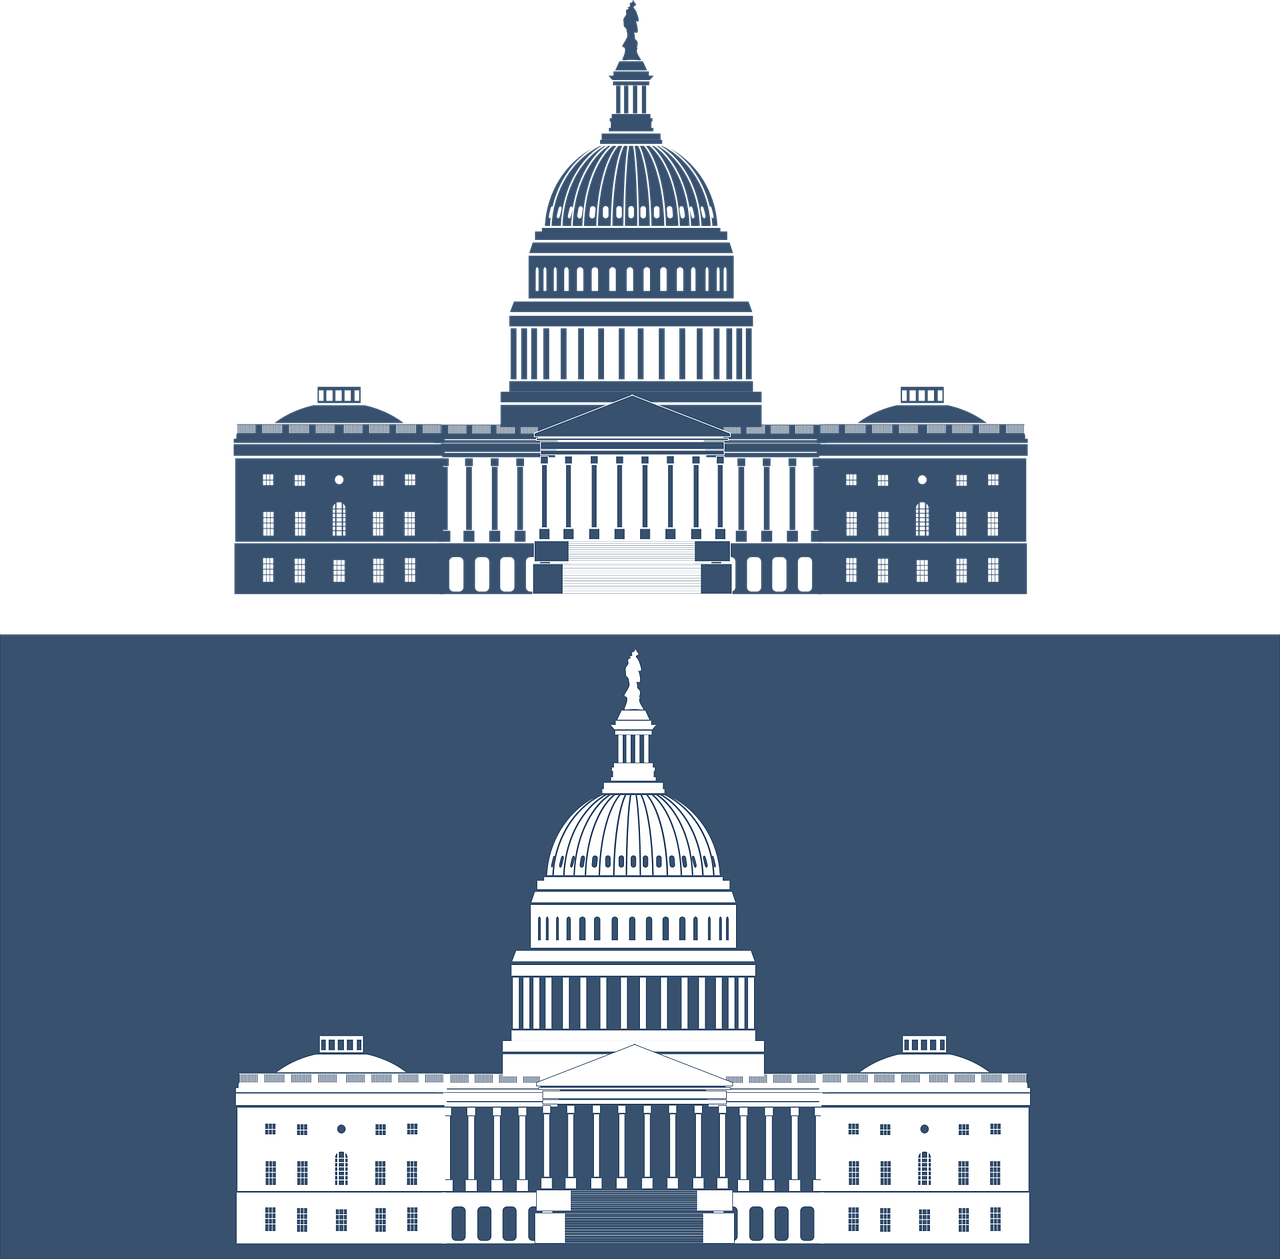 Congress house clipart picture royalty free library Accounting & Finances | Wang Solutions picture royalty free library